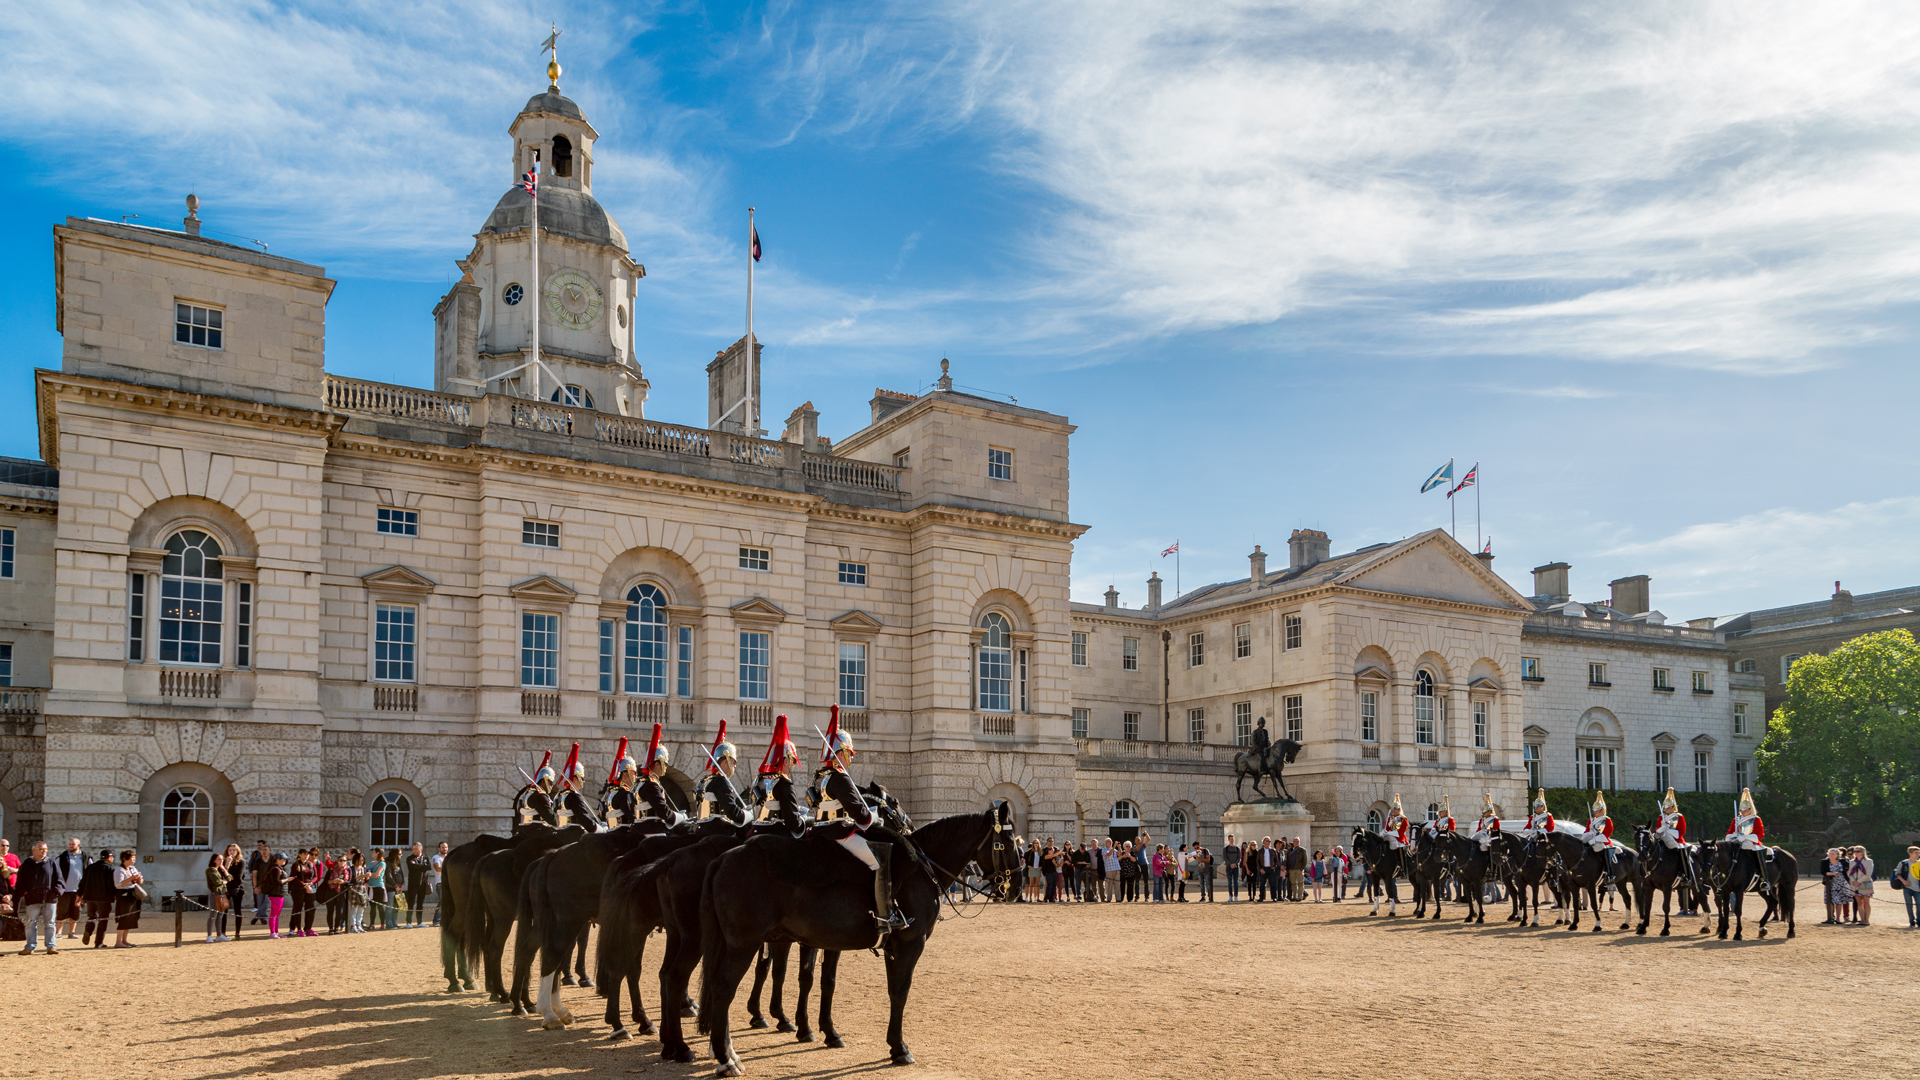 The Household Cavalry on Horse Guards Parade